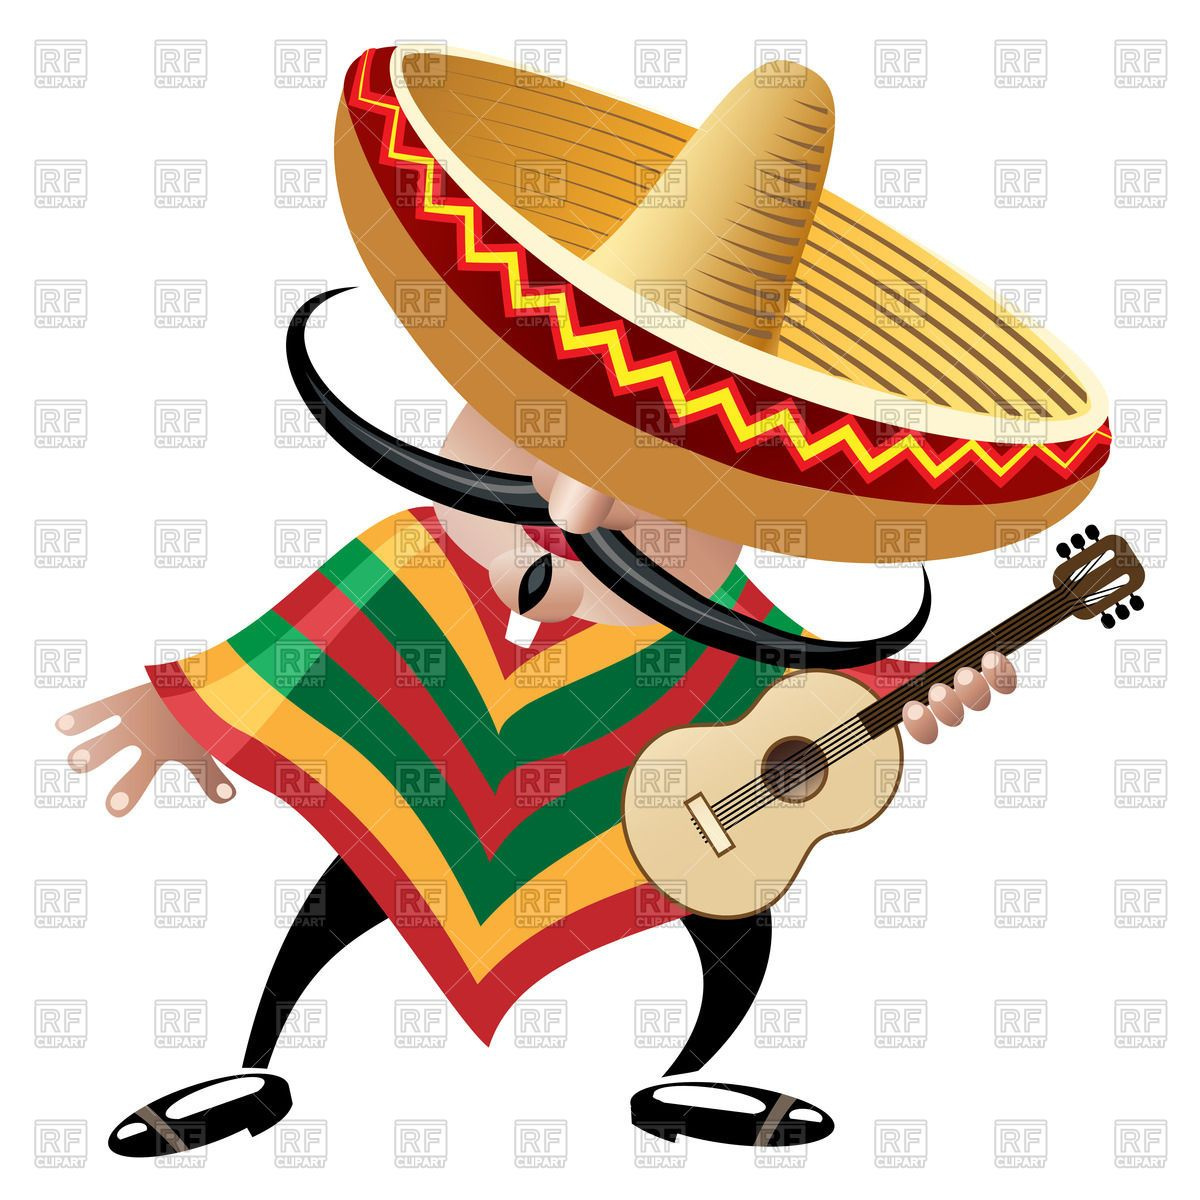 Spanish clipart flag and sombrero png black and white download Mexican Sombrero Clip Art Worm | Mexican Sombrero Clip Art Free ... png black and white download